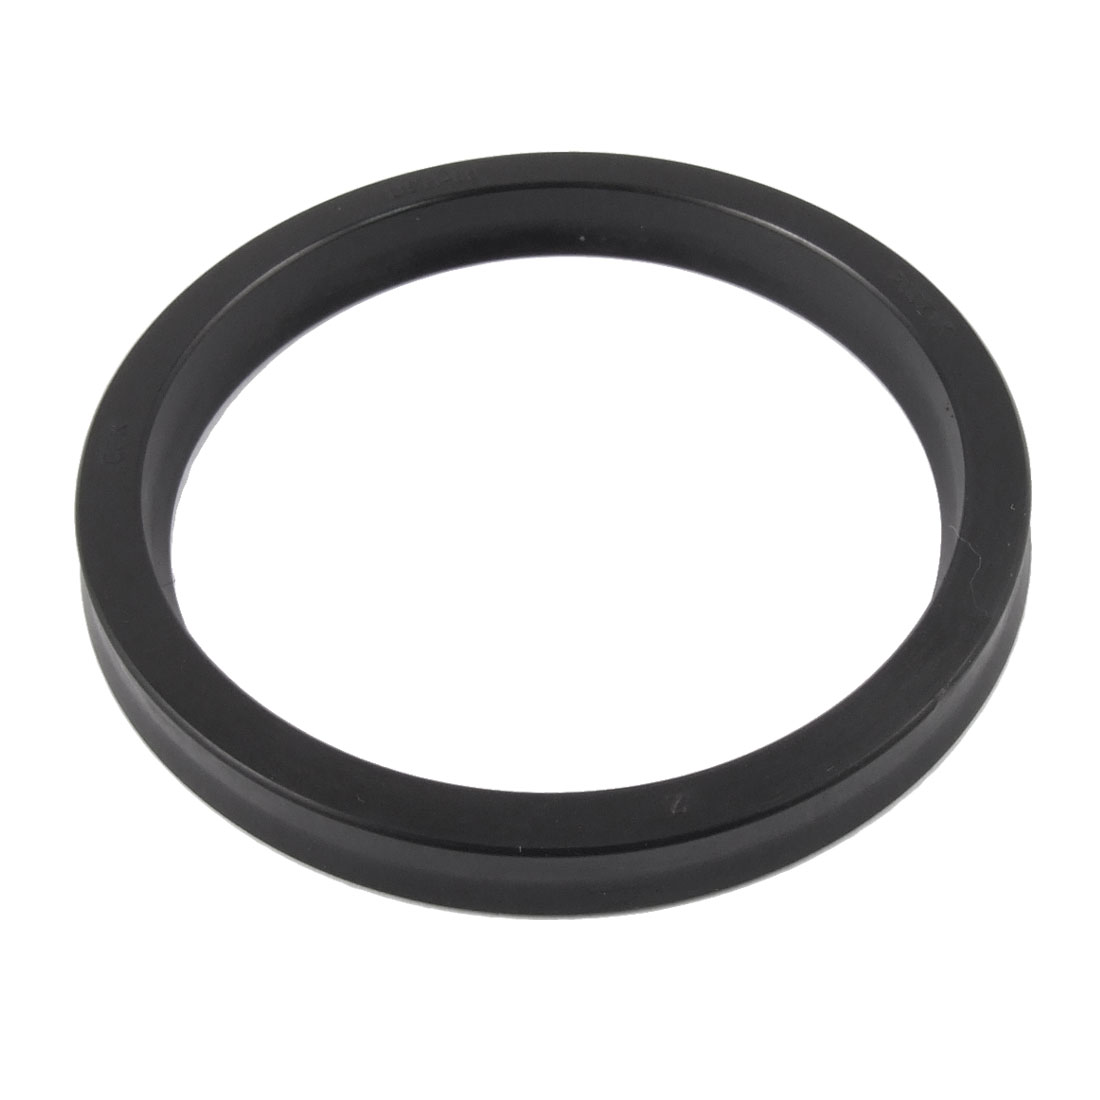 USH 60mm x 71mm x 7mm Hydraulic Rubber Oil Seal Ring Balck